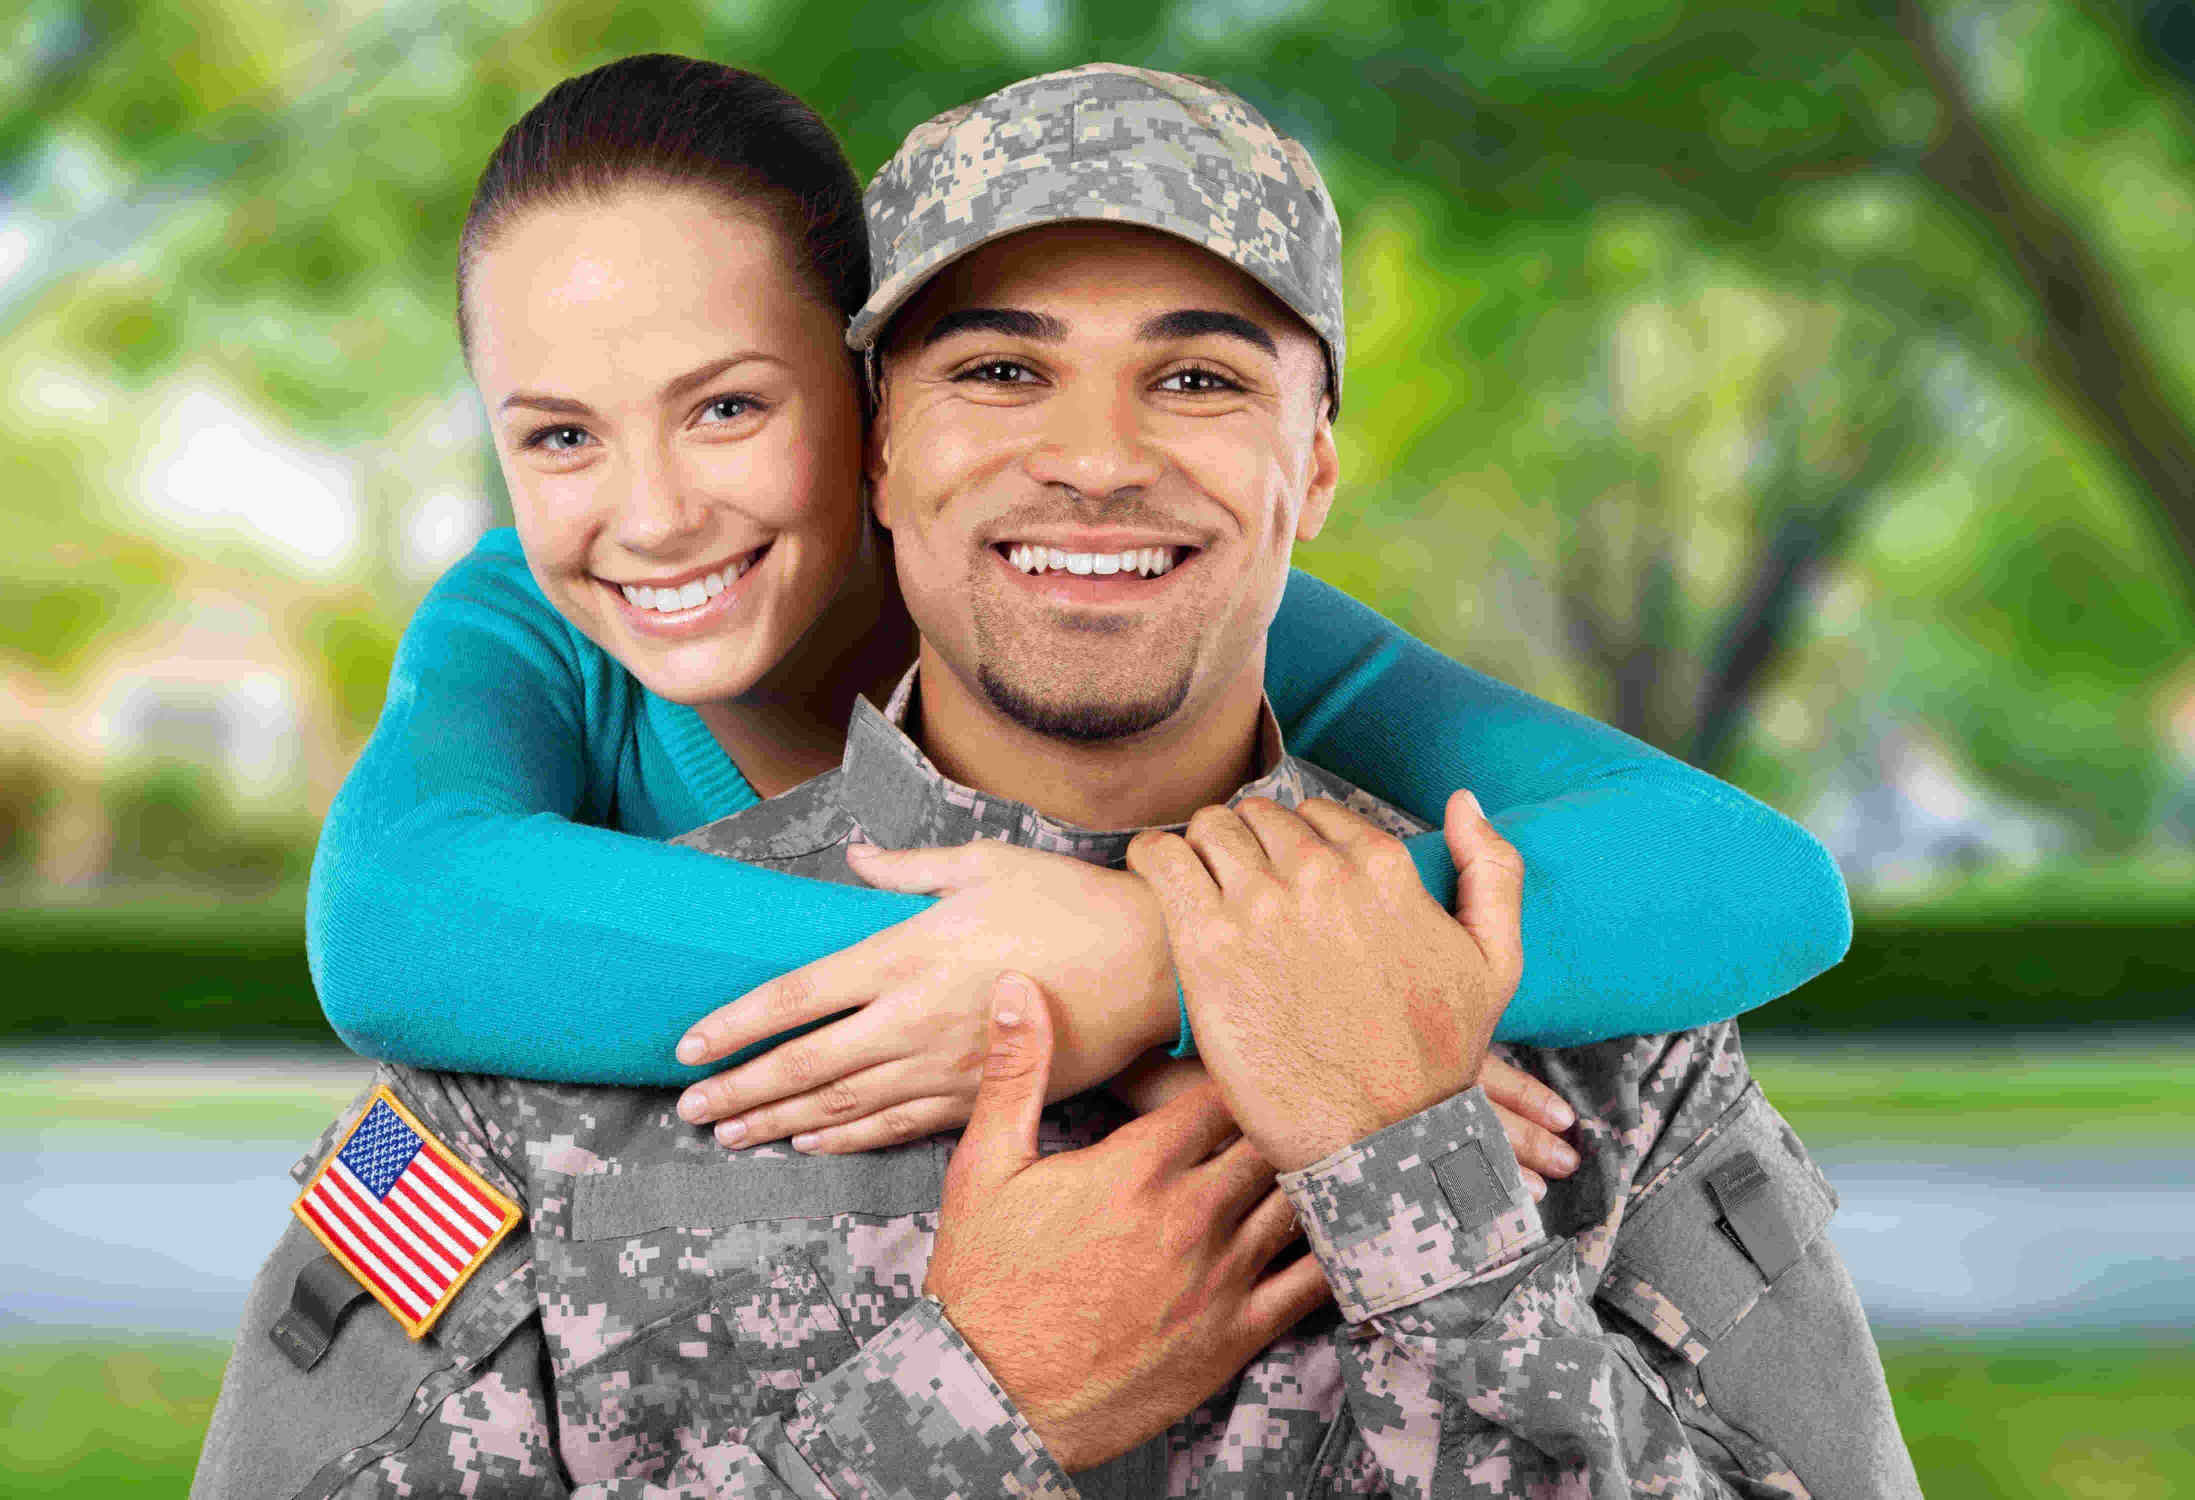 wife with arms around soldier